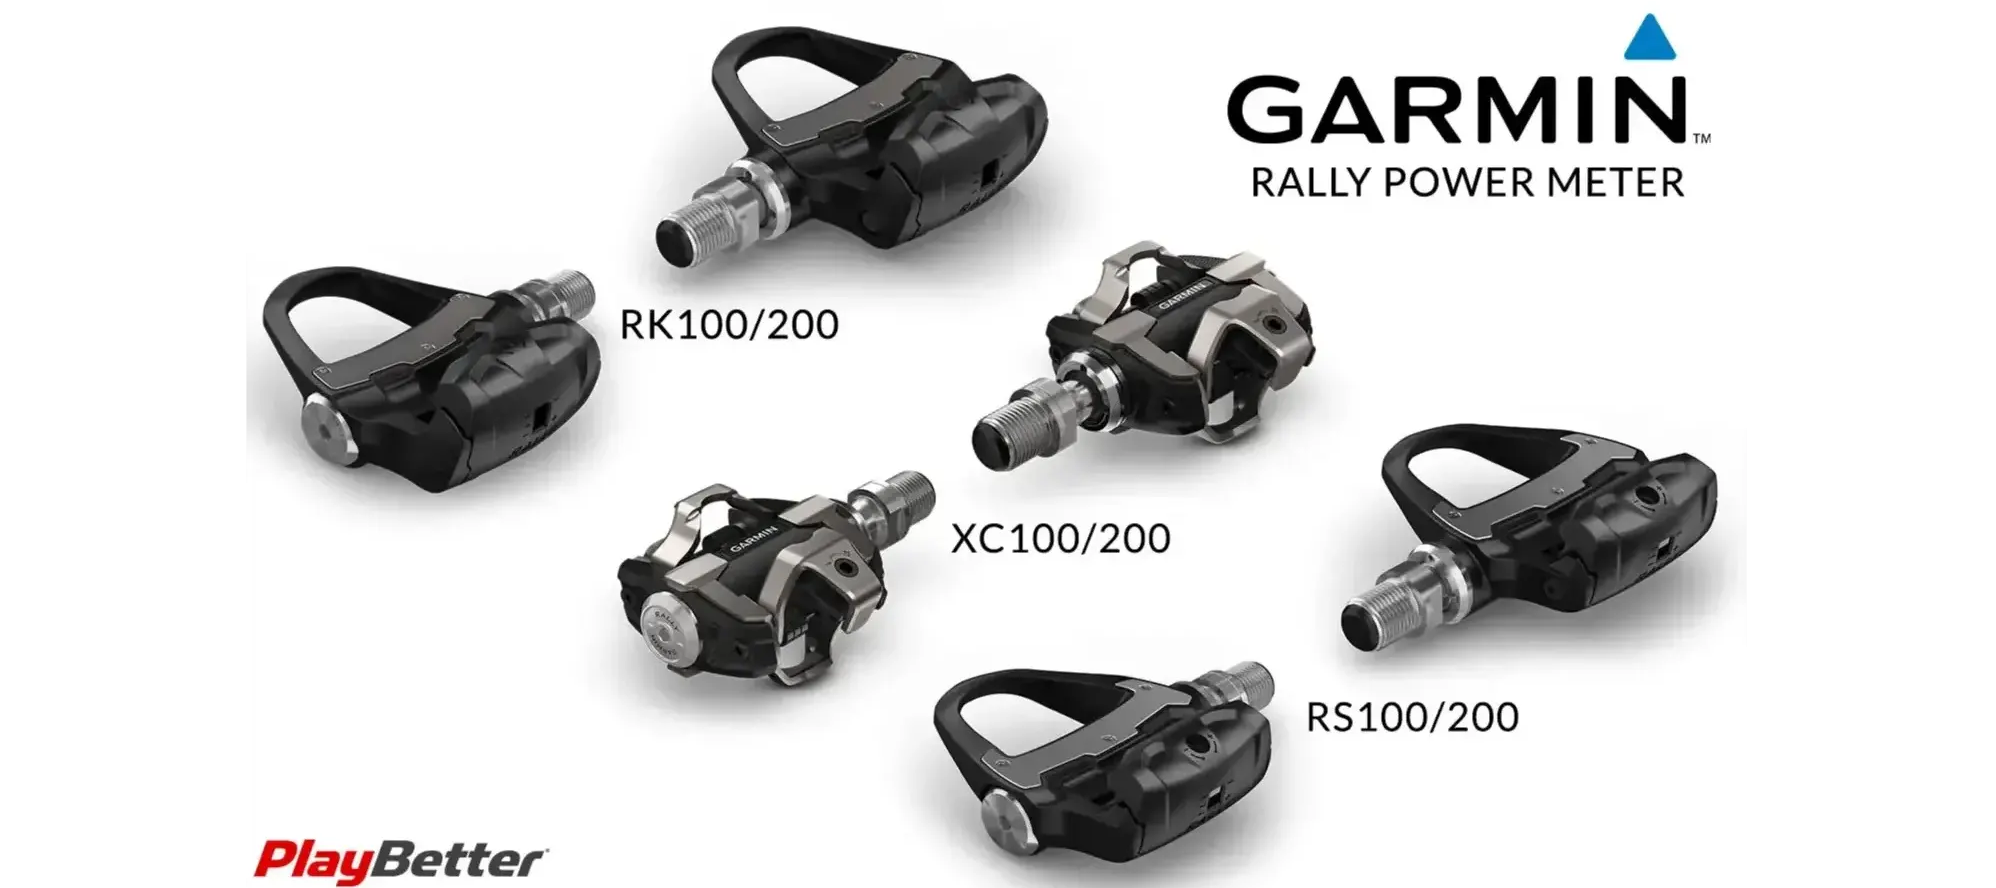 Rally Power Meters for On- and Off-Road Biking